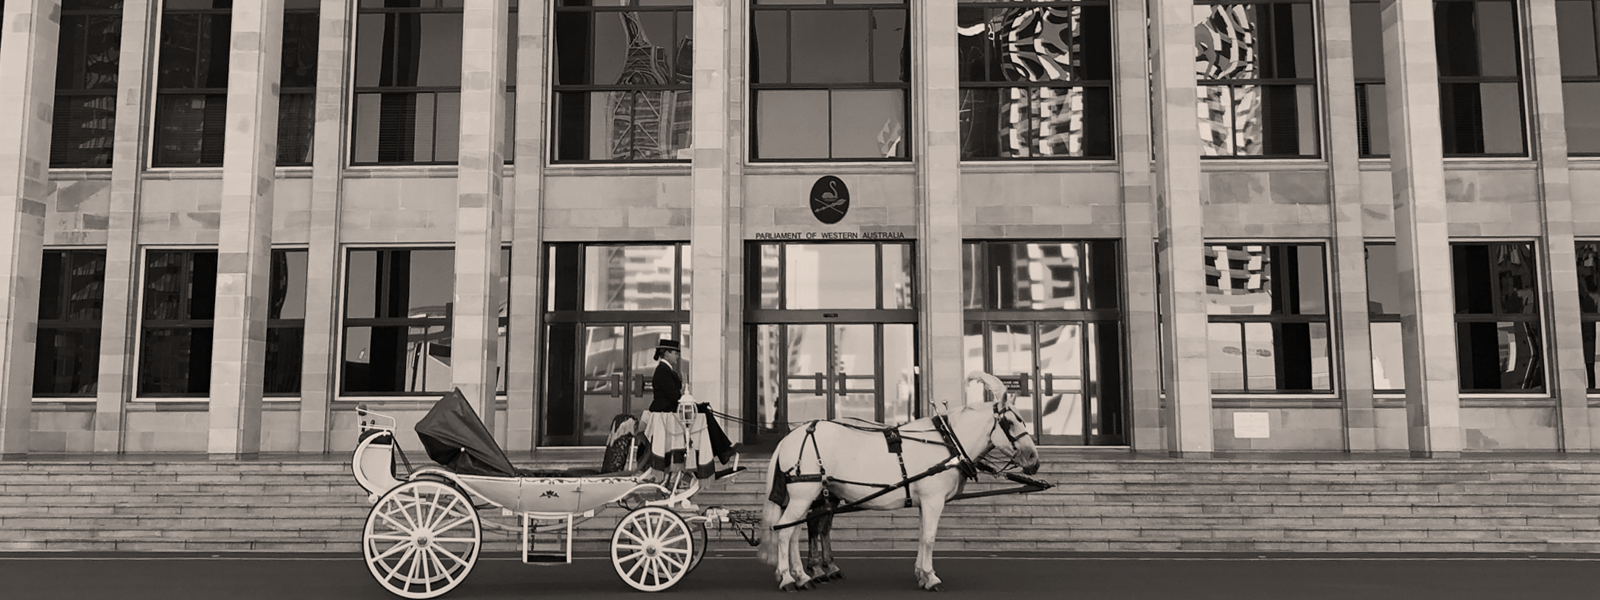 Perth-Horse-&-Carriage-Building